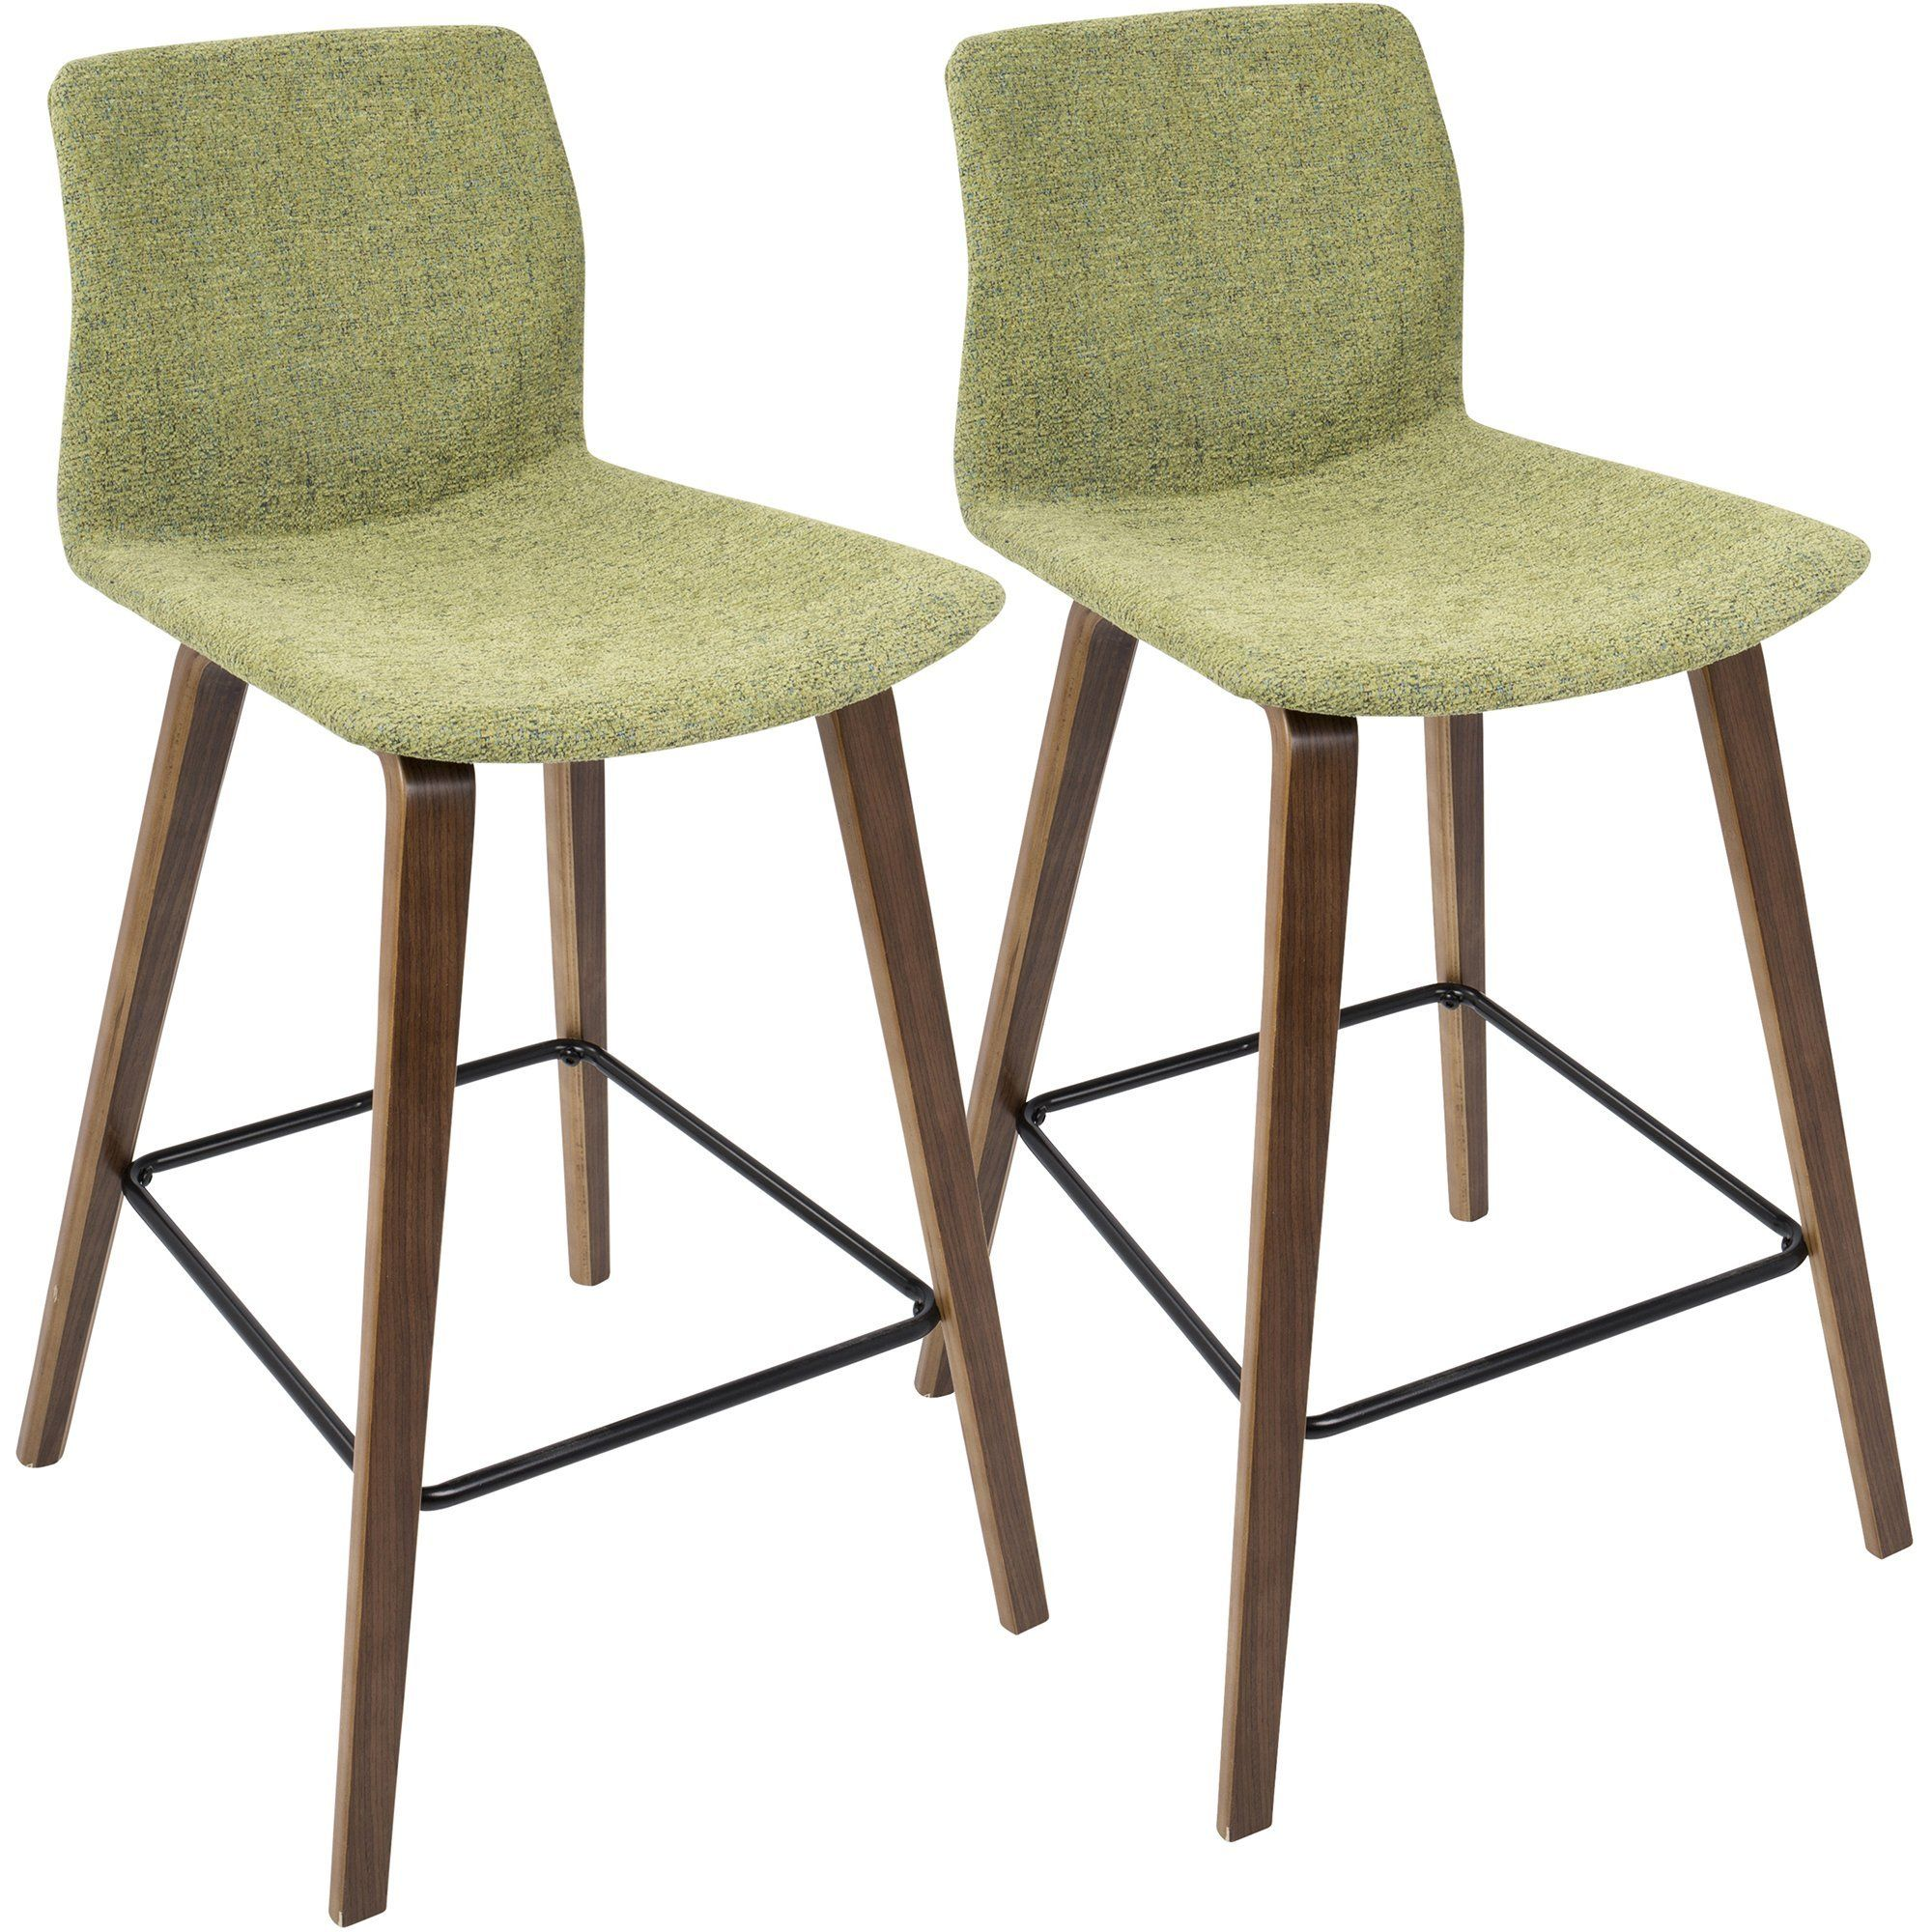 Cabo Mid Century Counter Stools With Green Fabric, Walnut (Set Of